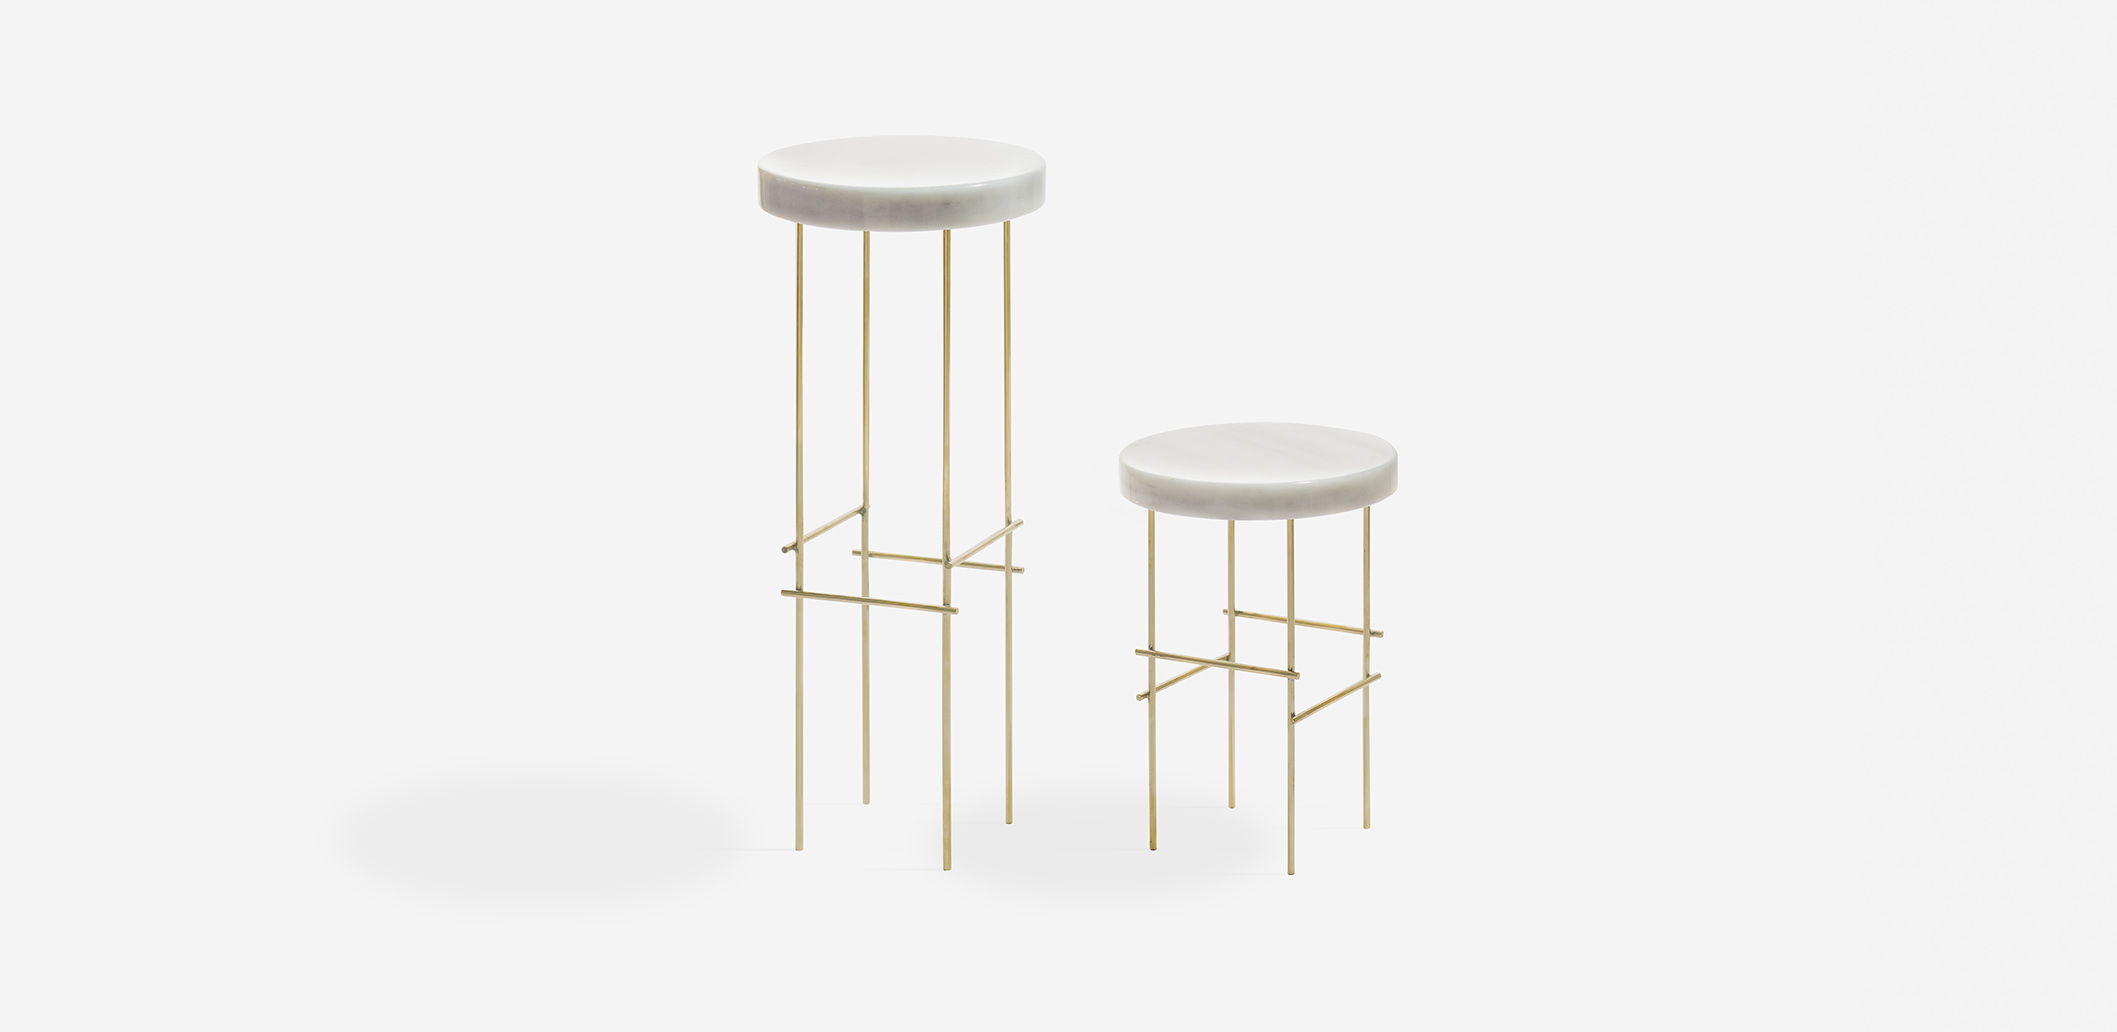 Marblelous Pedestal Brass MRBL116B Side table. Diameter: 30cm. Height: 44cm. For lovers of singularity: a pedestal to expose the thing you love most. The Marblelous Pedestal uses minimalist design to valorize nobles materials, adding style and elegance to your home.